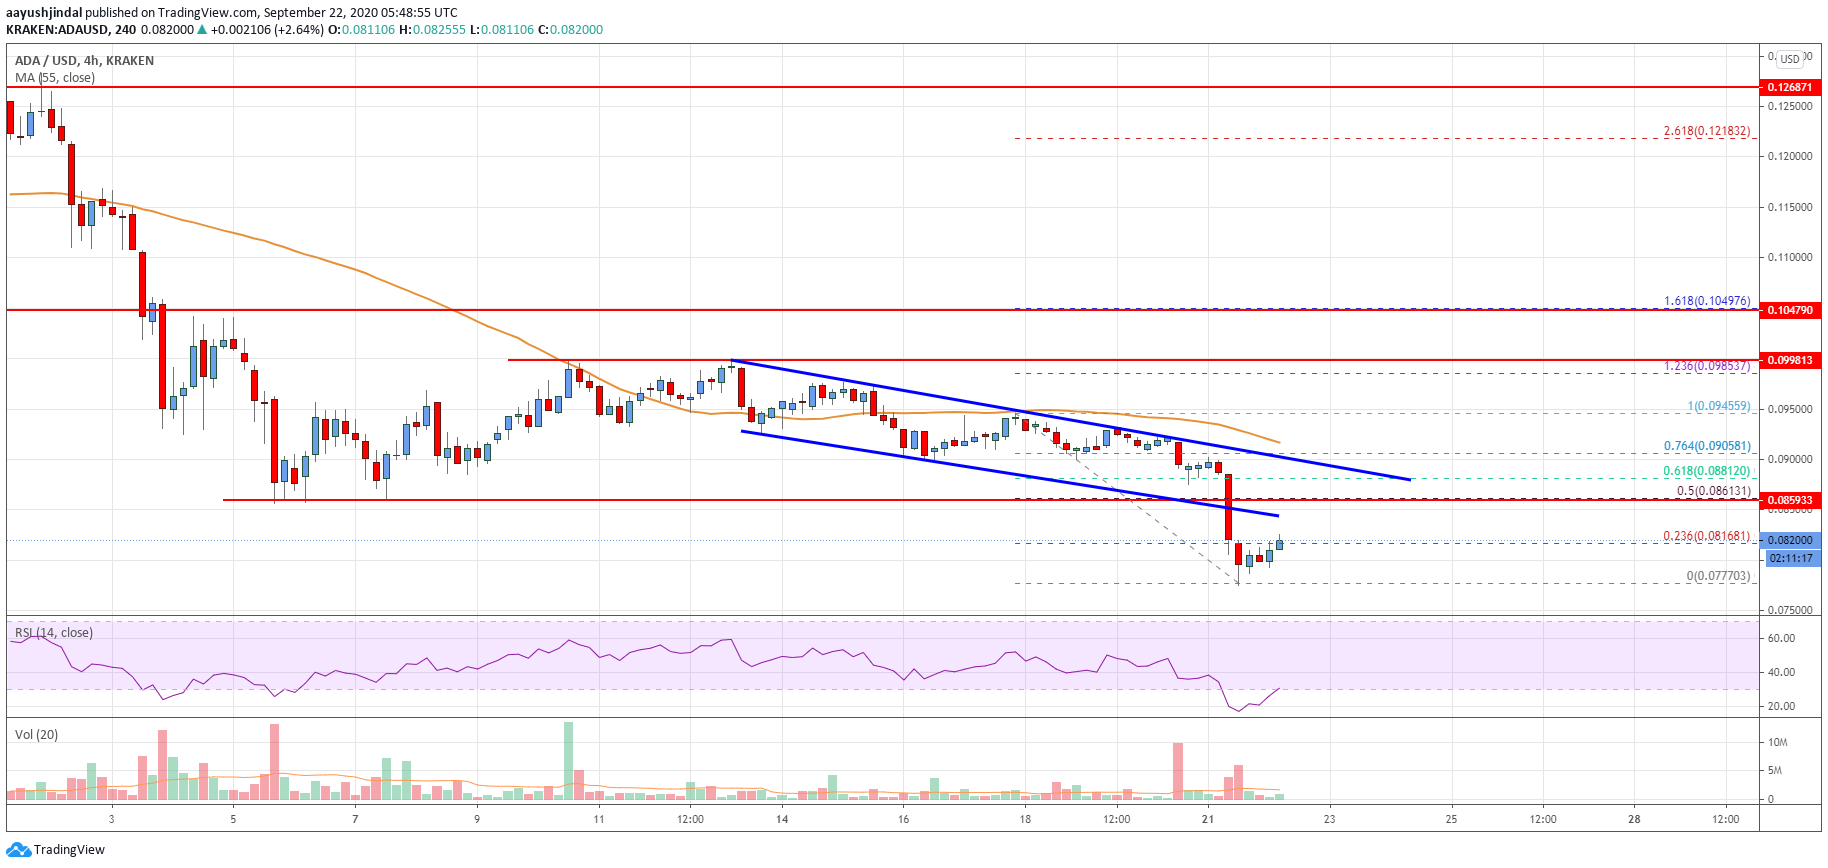 Cardano (ADA) Price Analysis: More Losses Likely Below $0.07